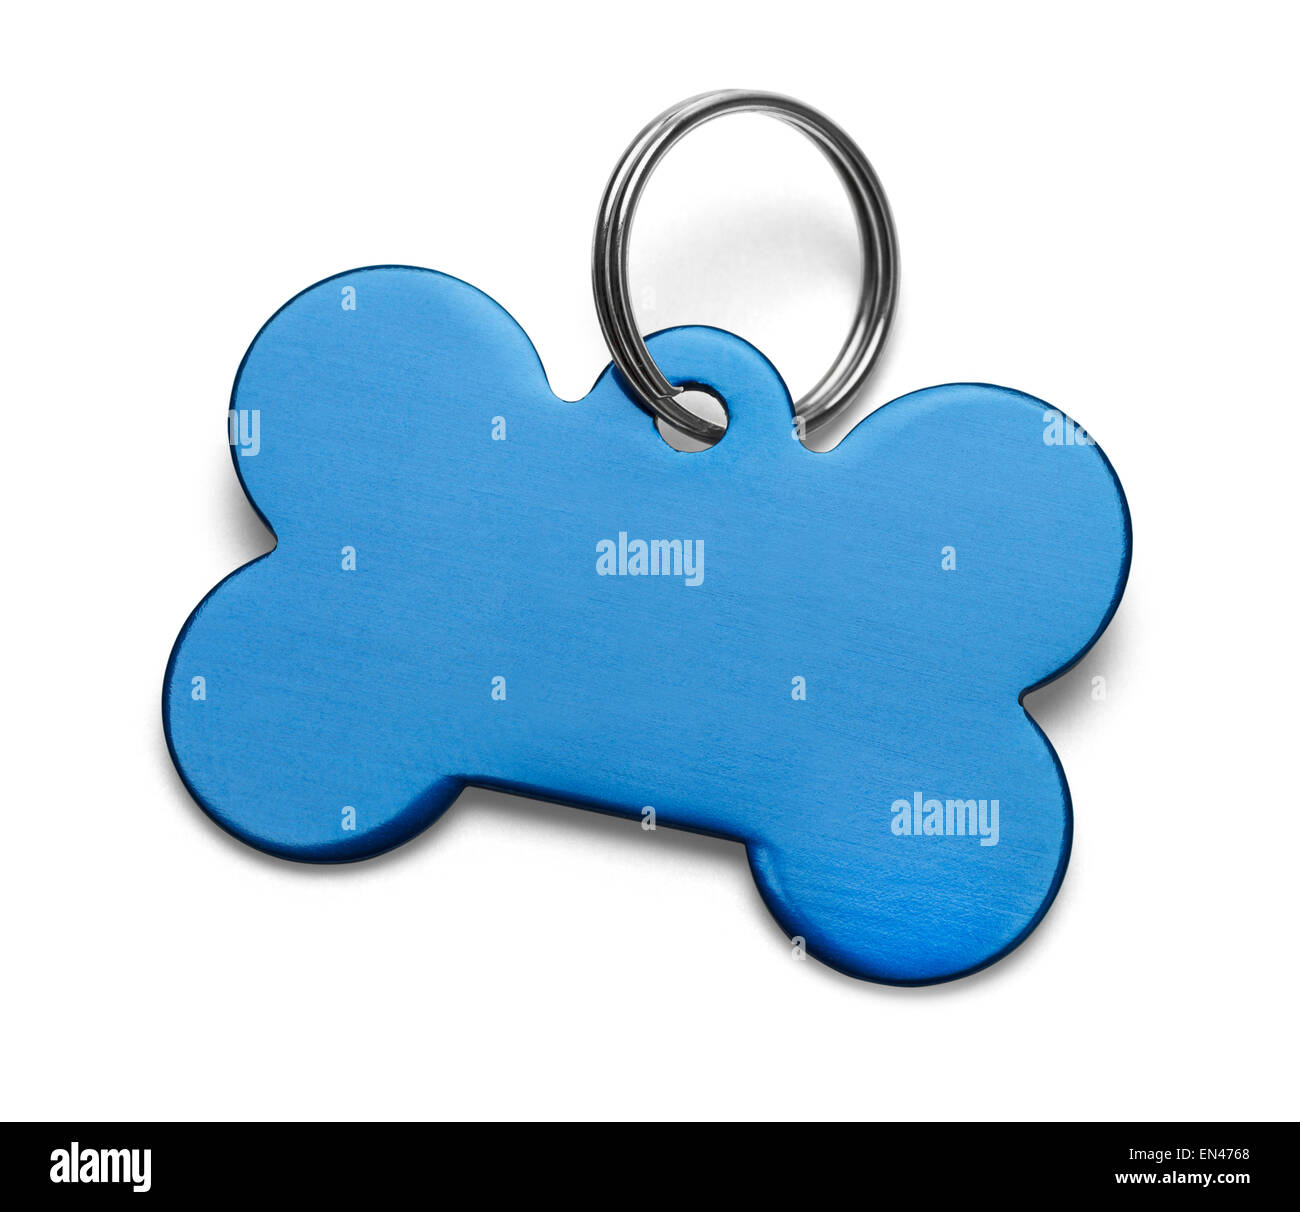 Blank Metal Bone Dog Tag With Ring Isolated on White Background. Stock Photo